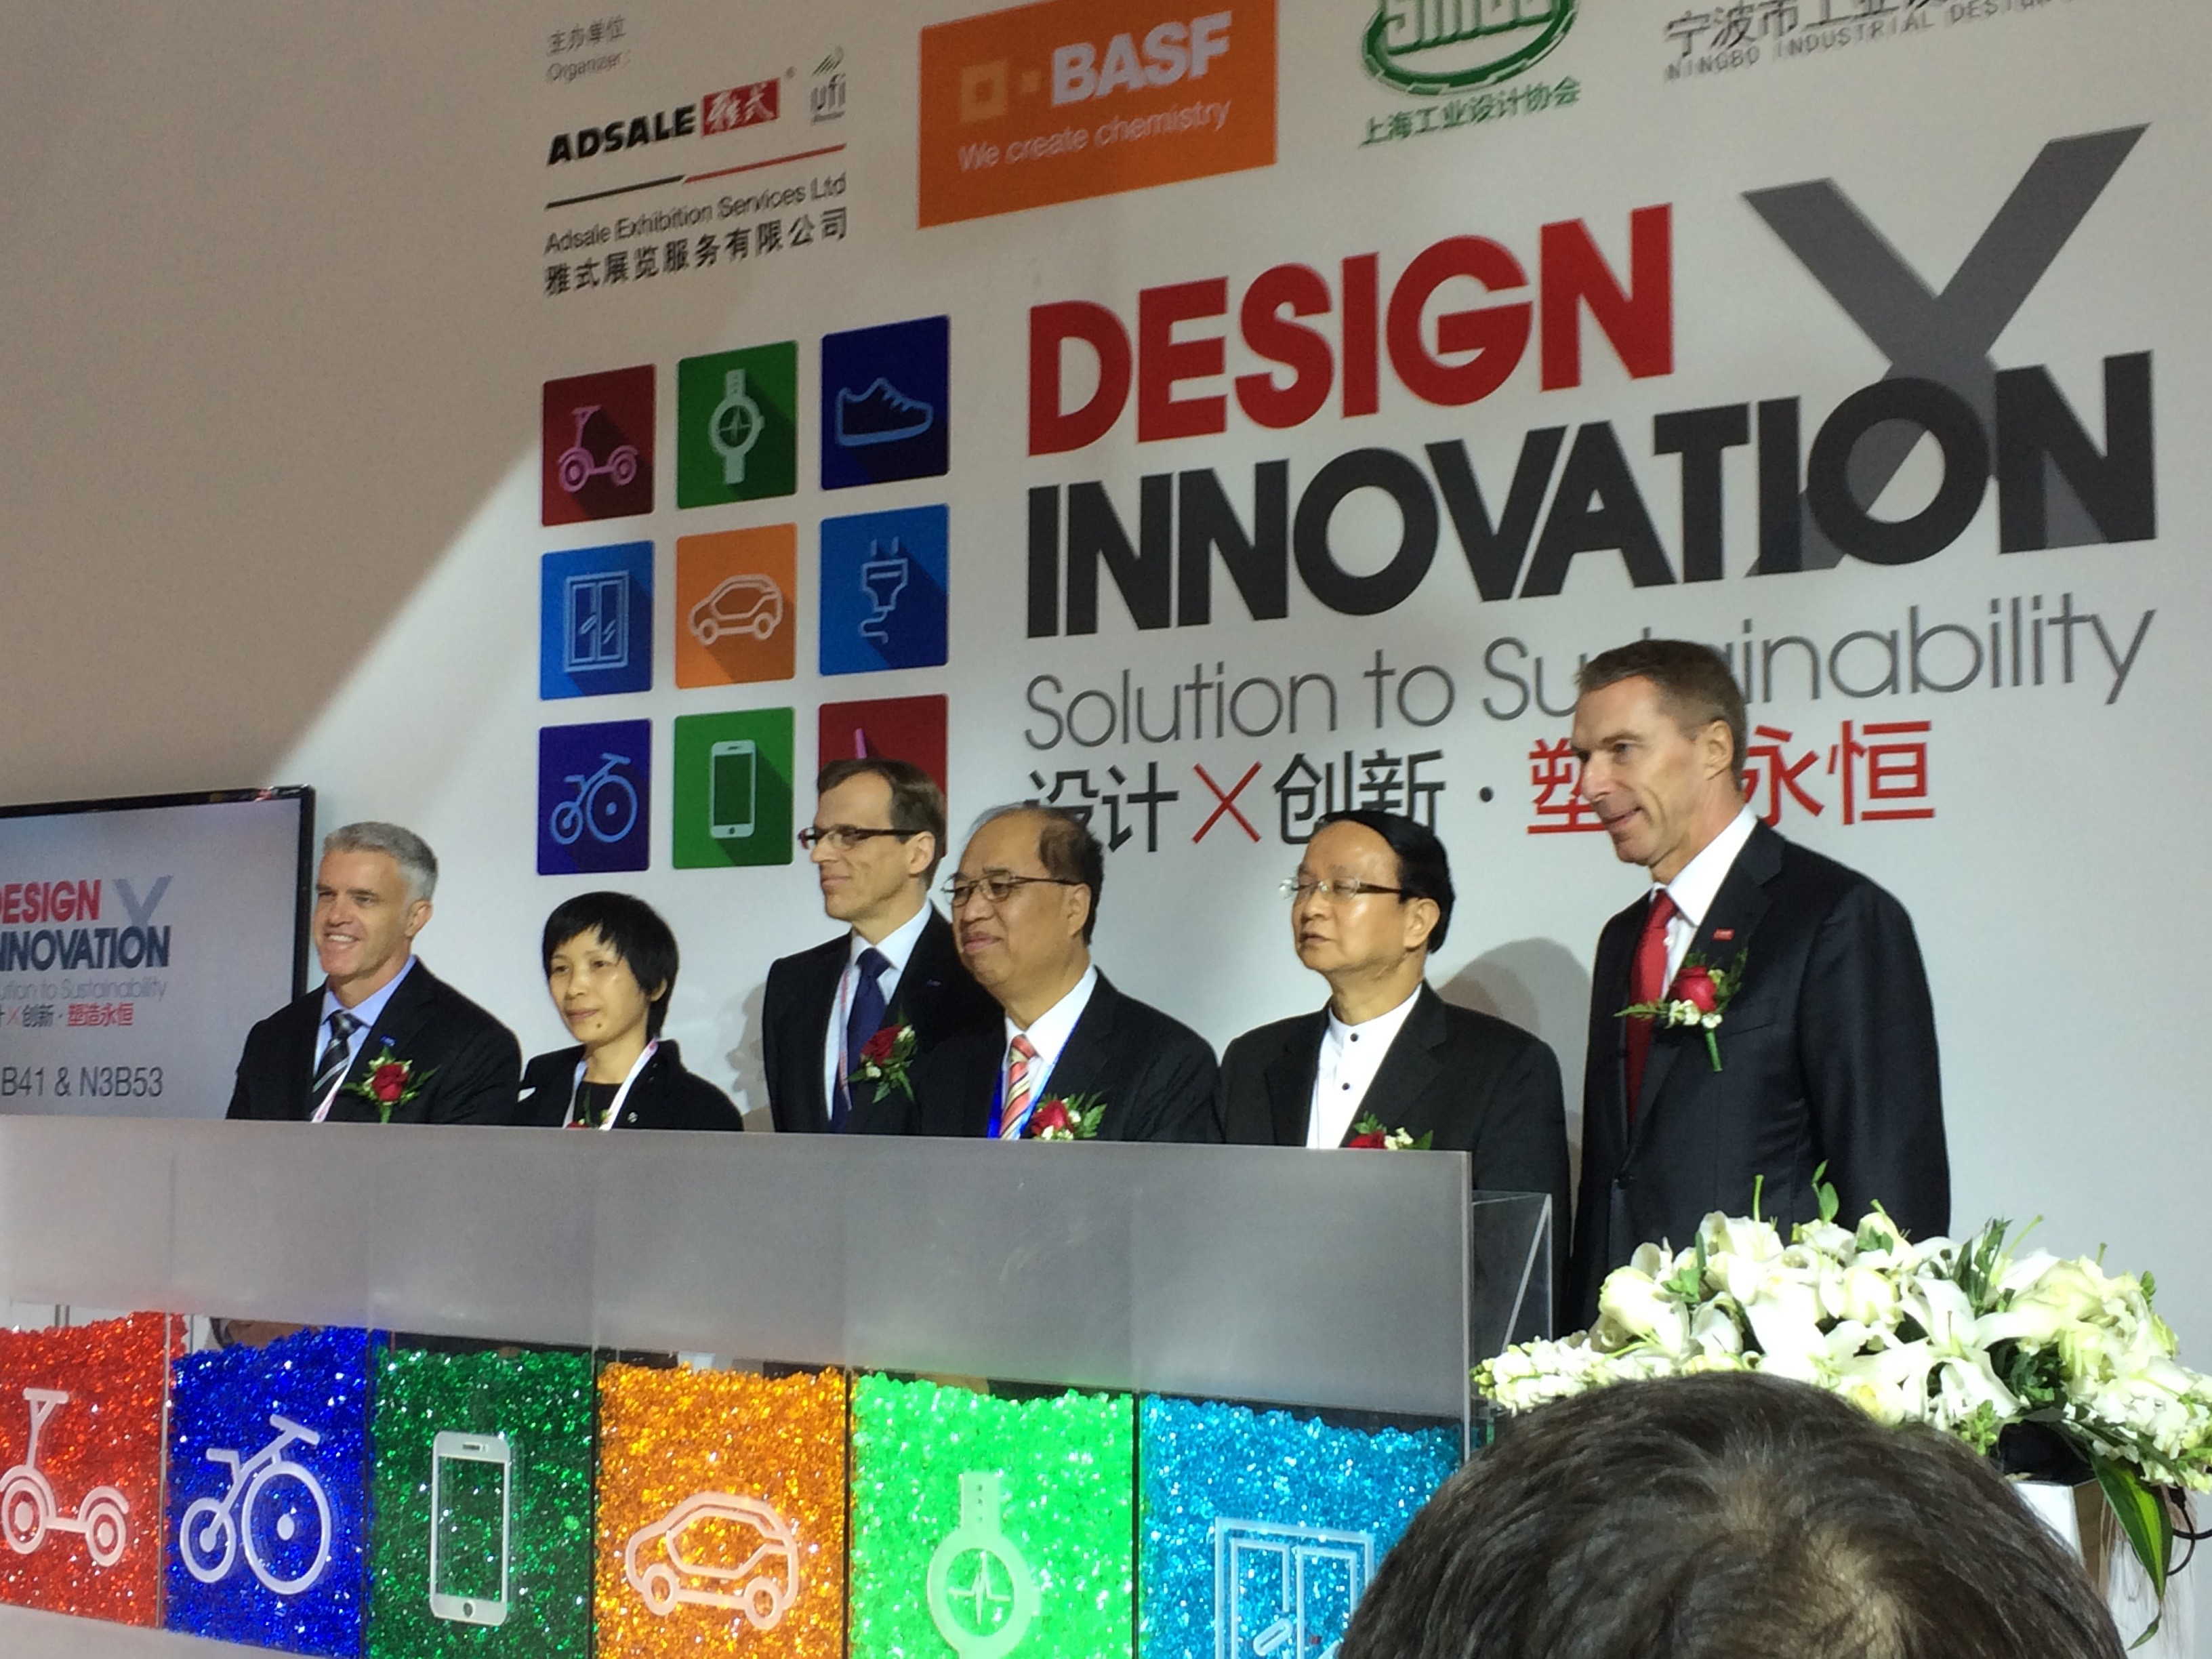 Chinaplas BASF Design x Innovation